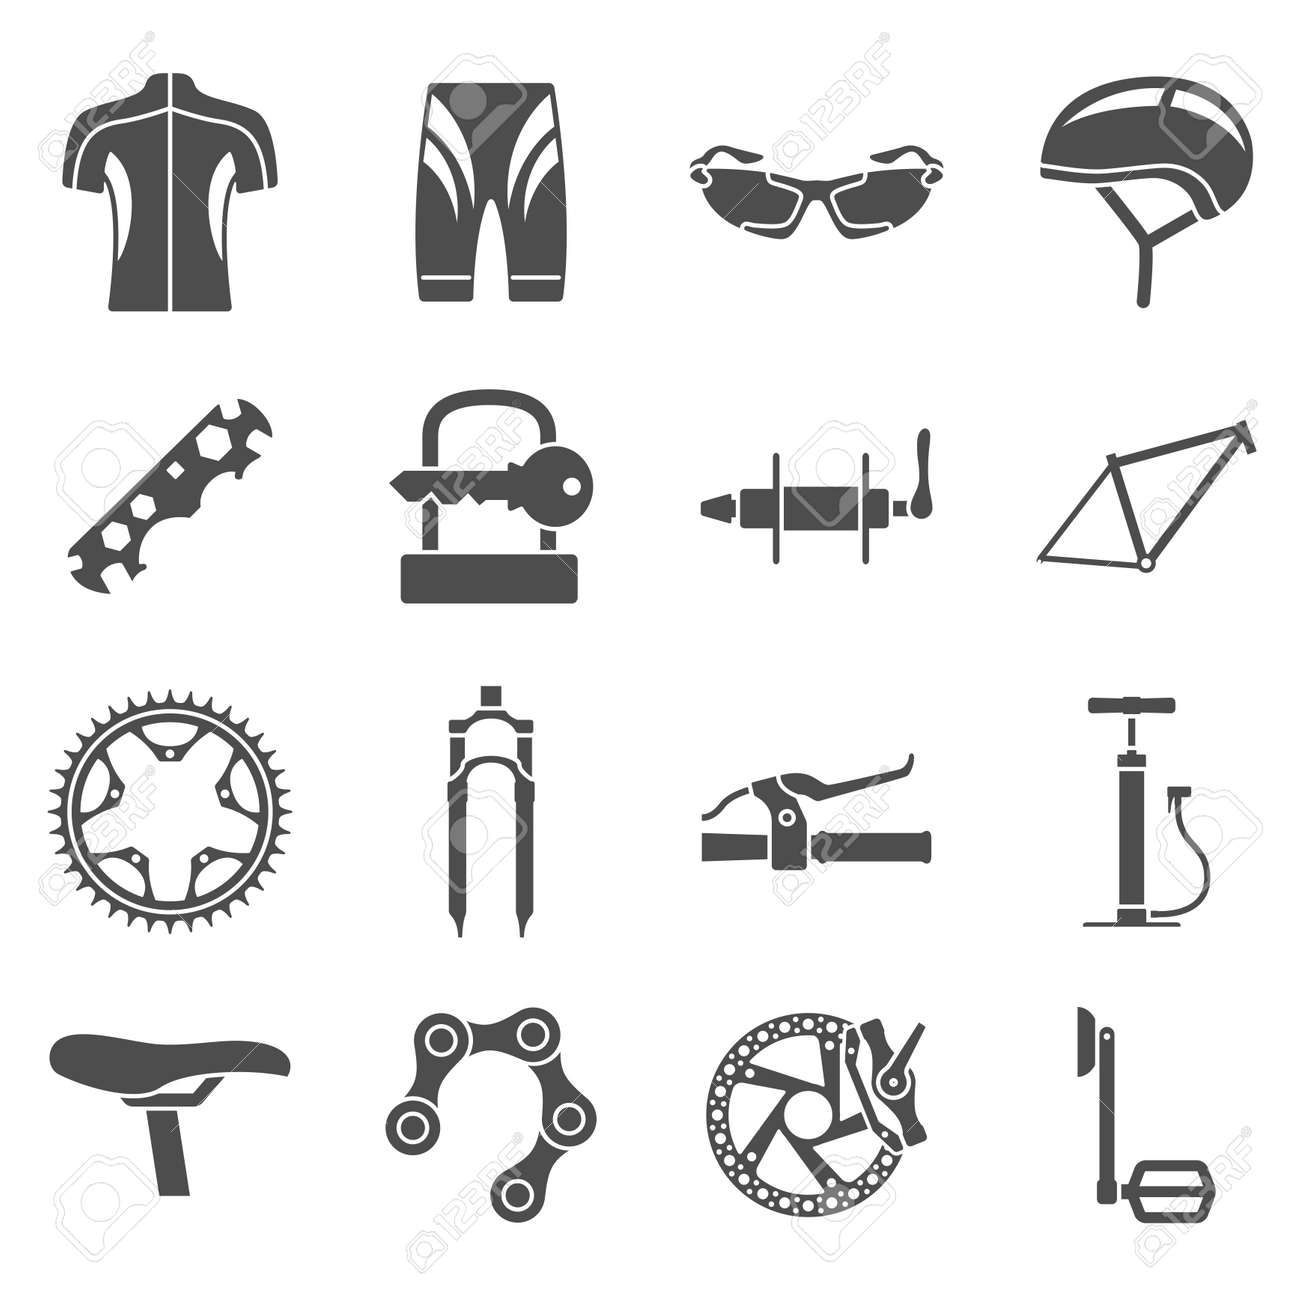 Set Of Black And White Silhouette Icons Of Bicycle Spare Parts